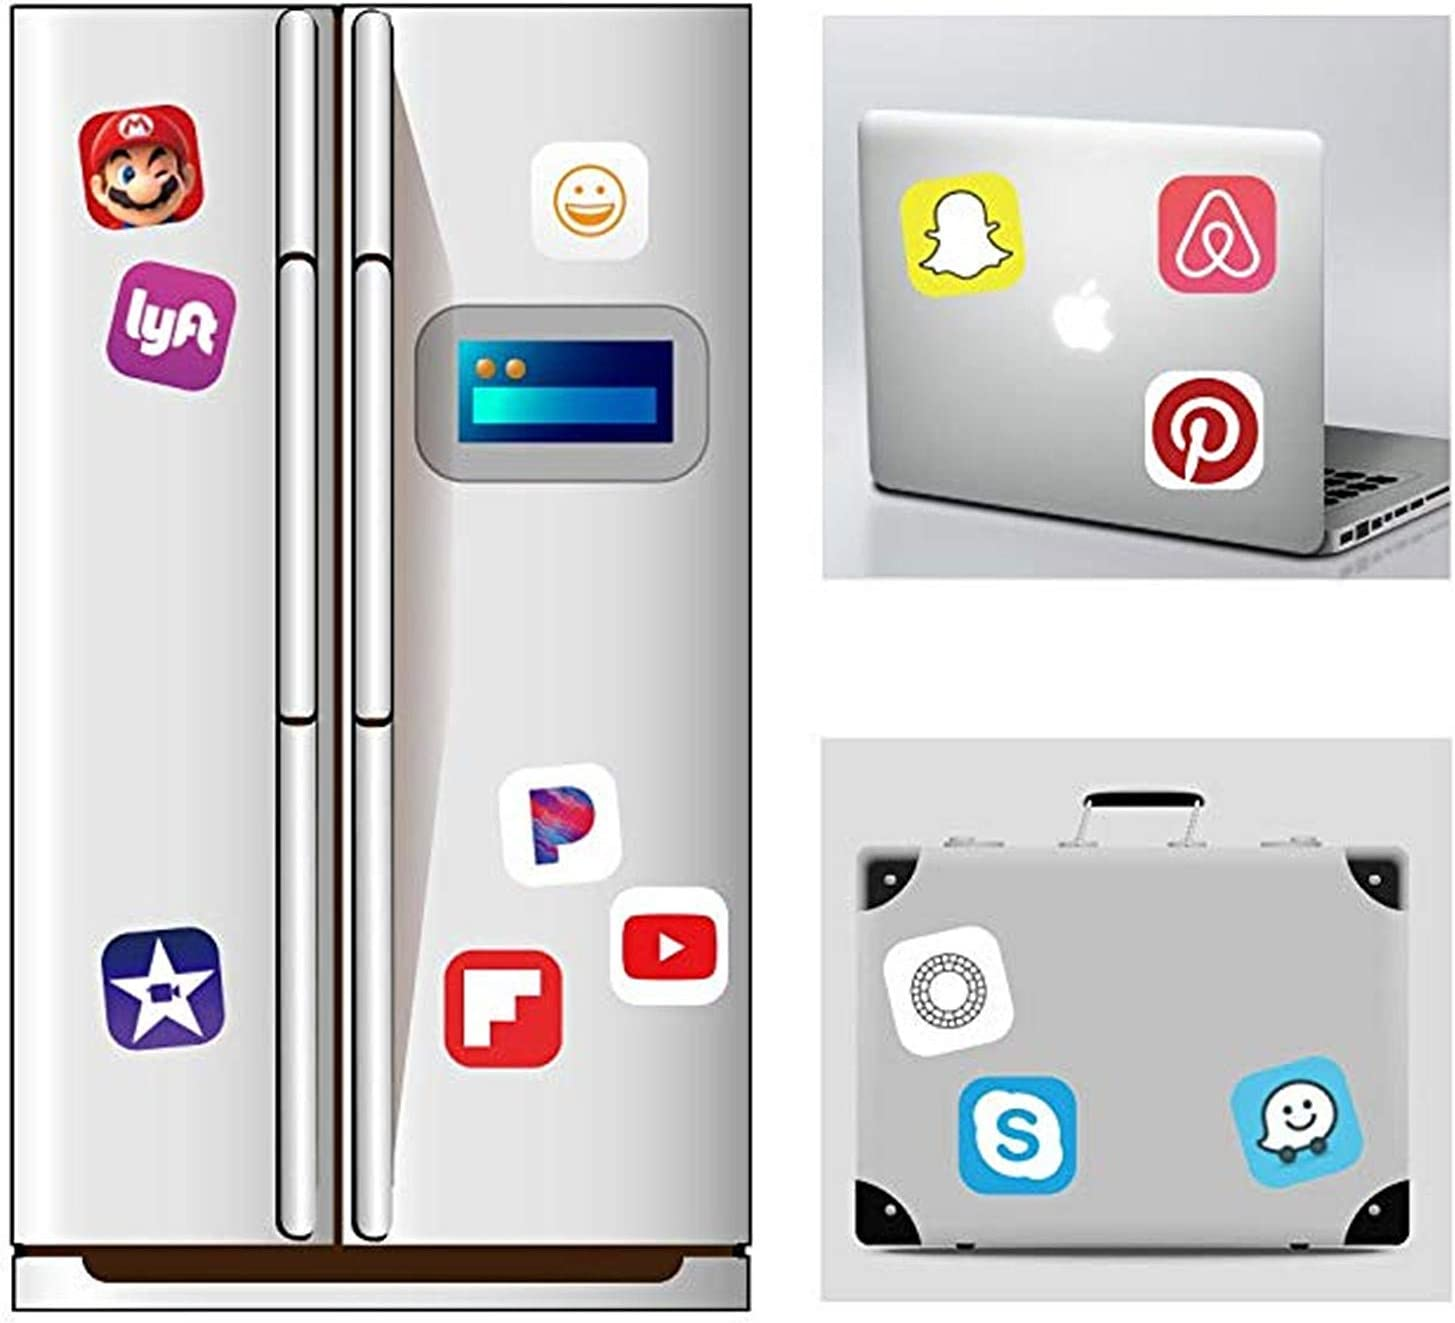 Social Media Stickers for Laptop and Anywhere 50 App Stickers UV Protected /& Waterproof Vinyl Decals